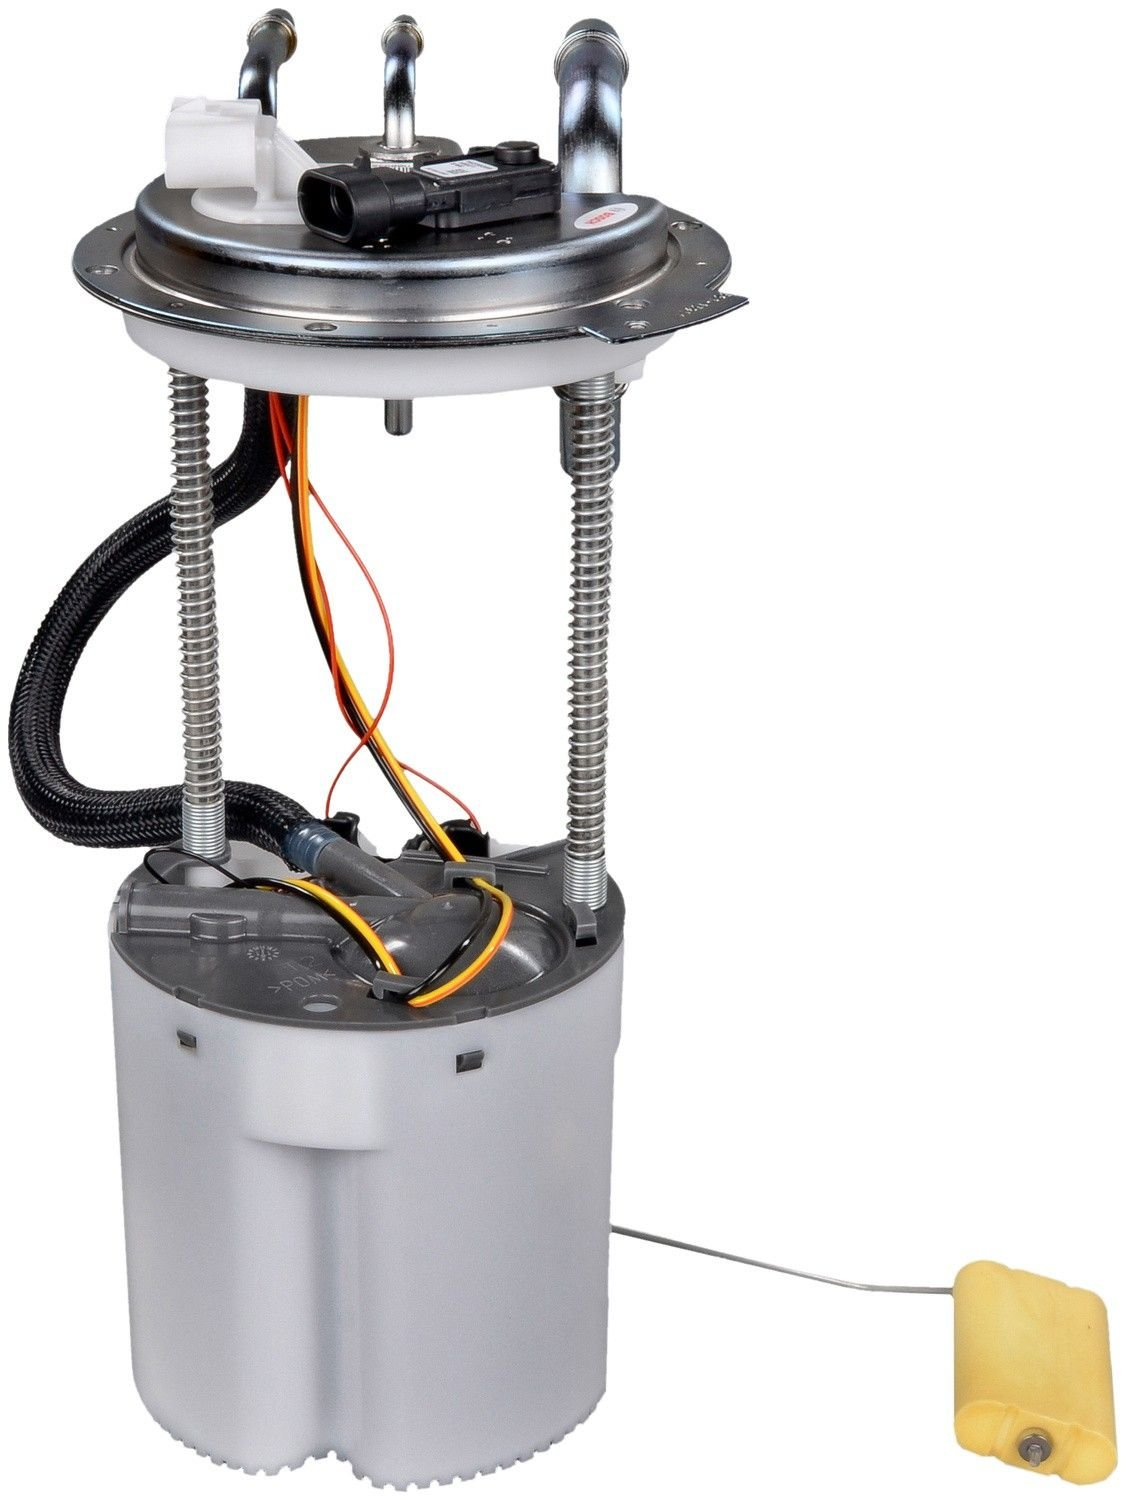 Chevrolet Tahoe Fuel Pump Module Assembly Replacement Acdelco Chevy Wiring 2004 8 Cyl 48l Bosch 67442 Actual Oe Part With Level Sensor